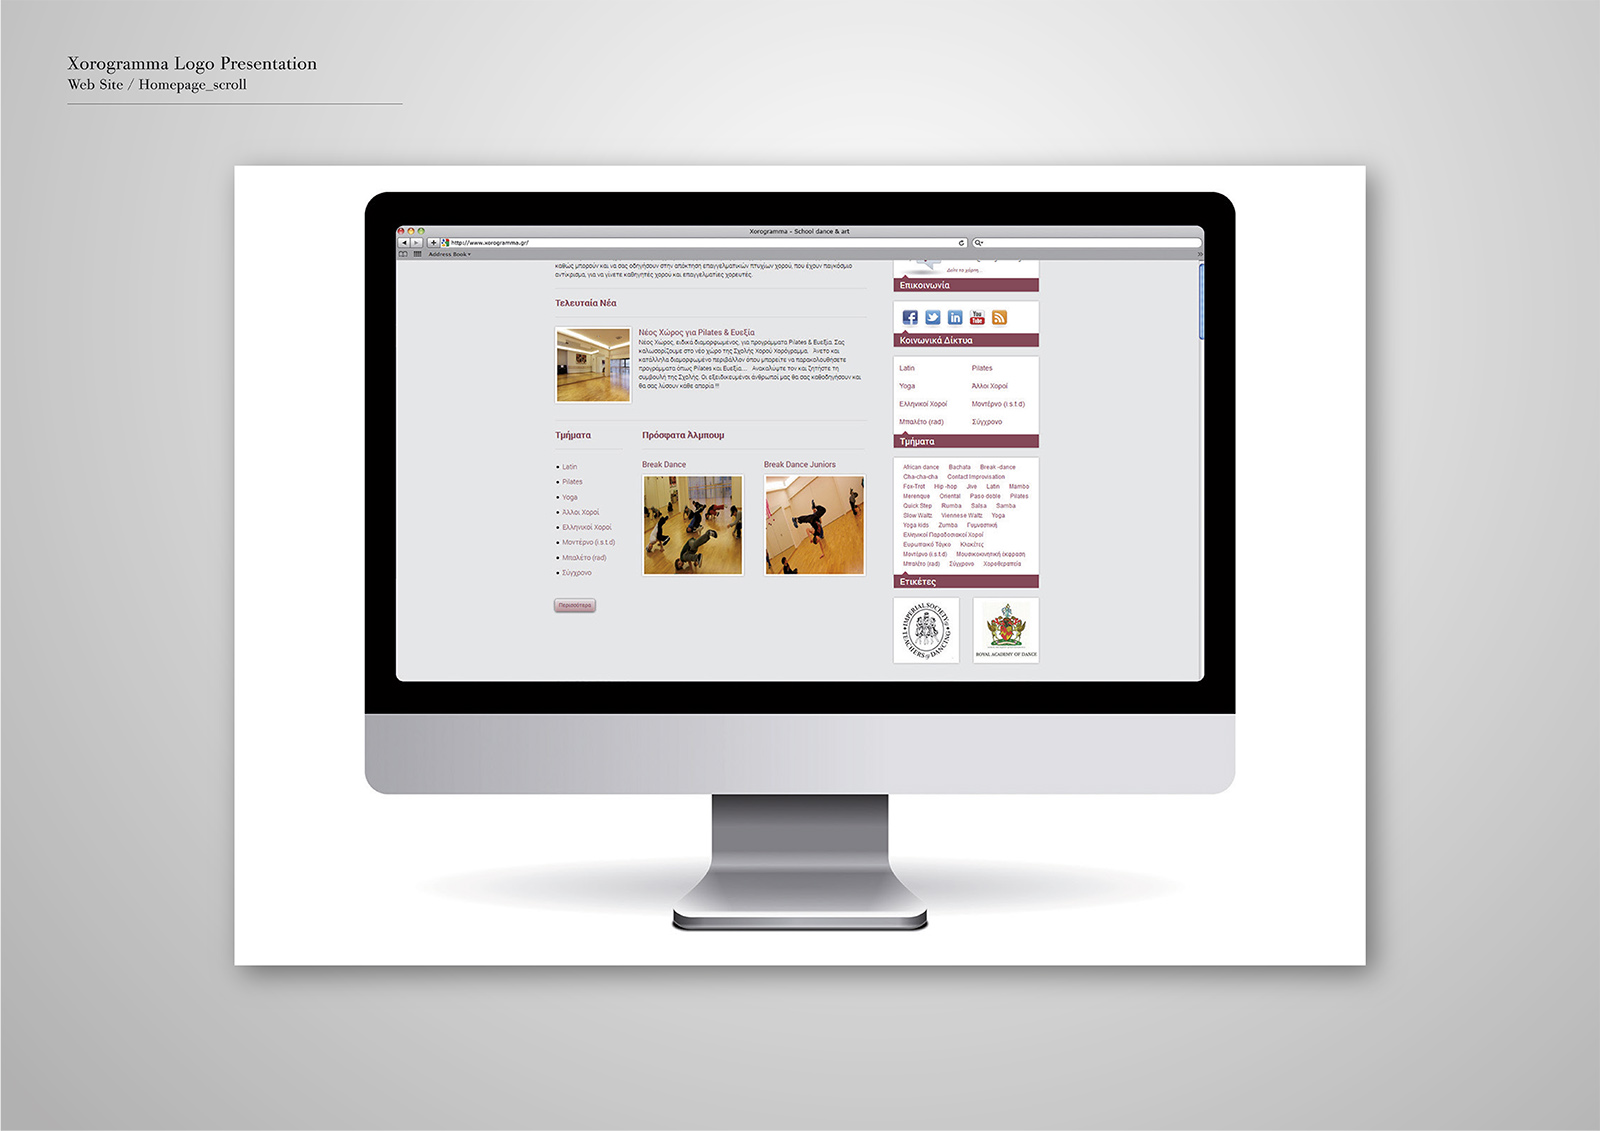 Corporate Identity Xorogramma_website_homepage_scroll_yianart